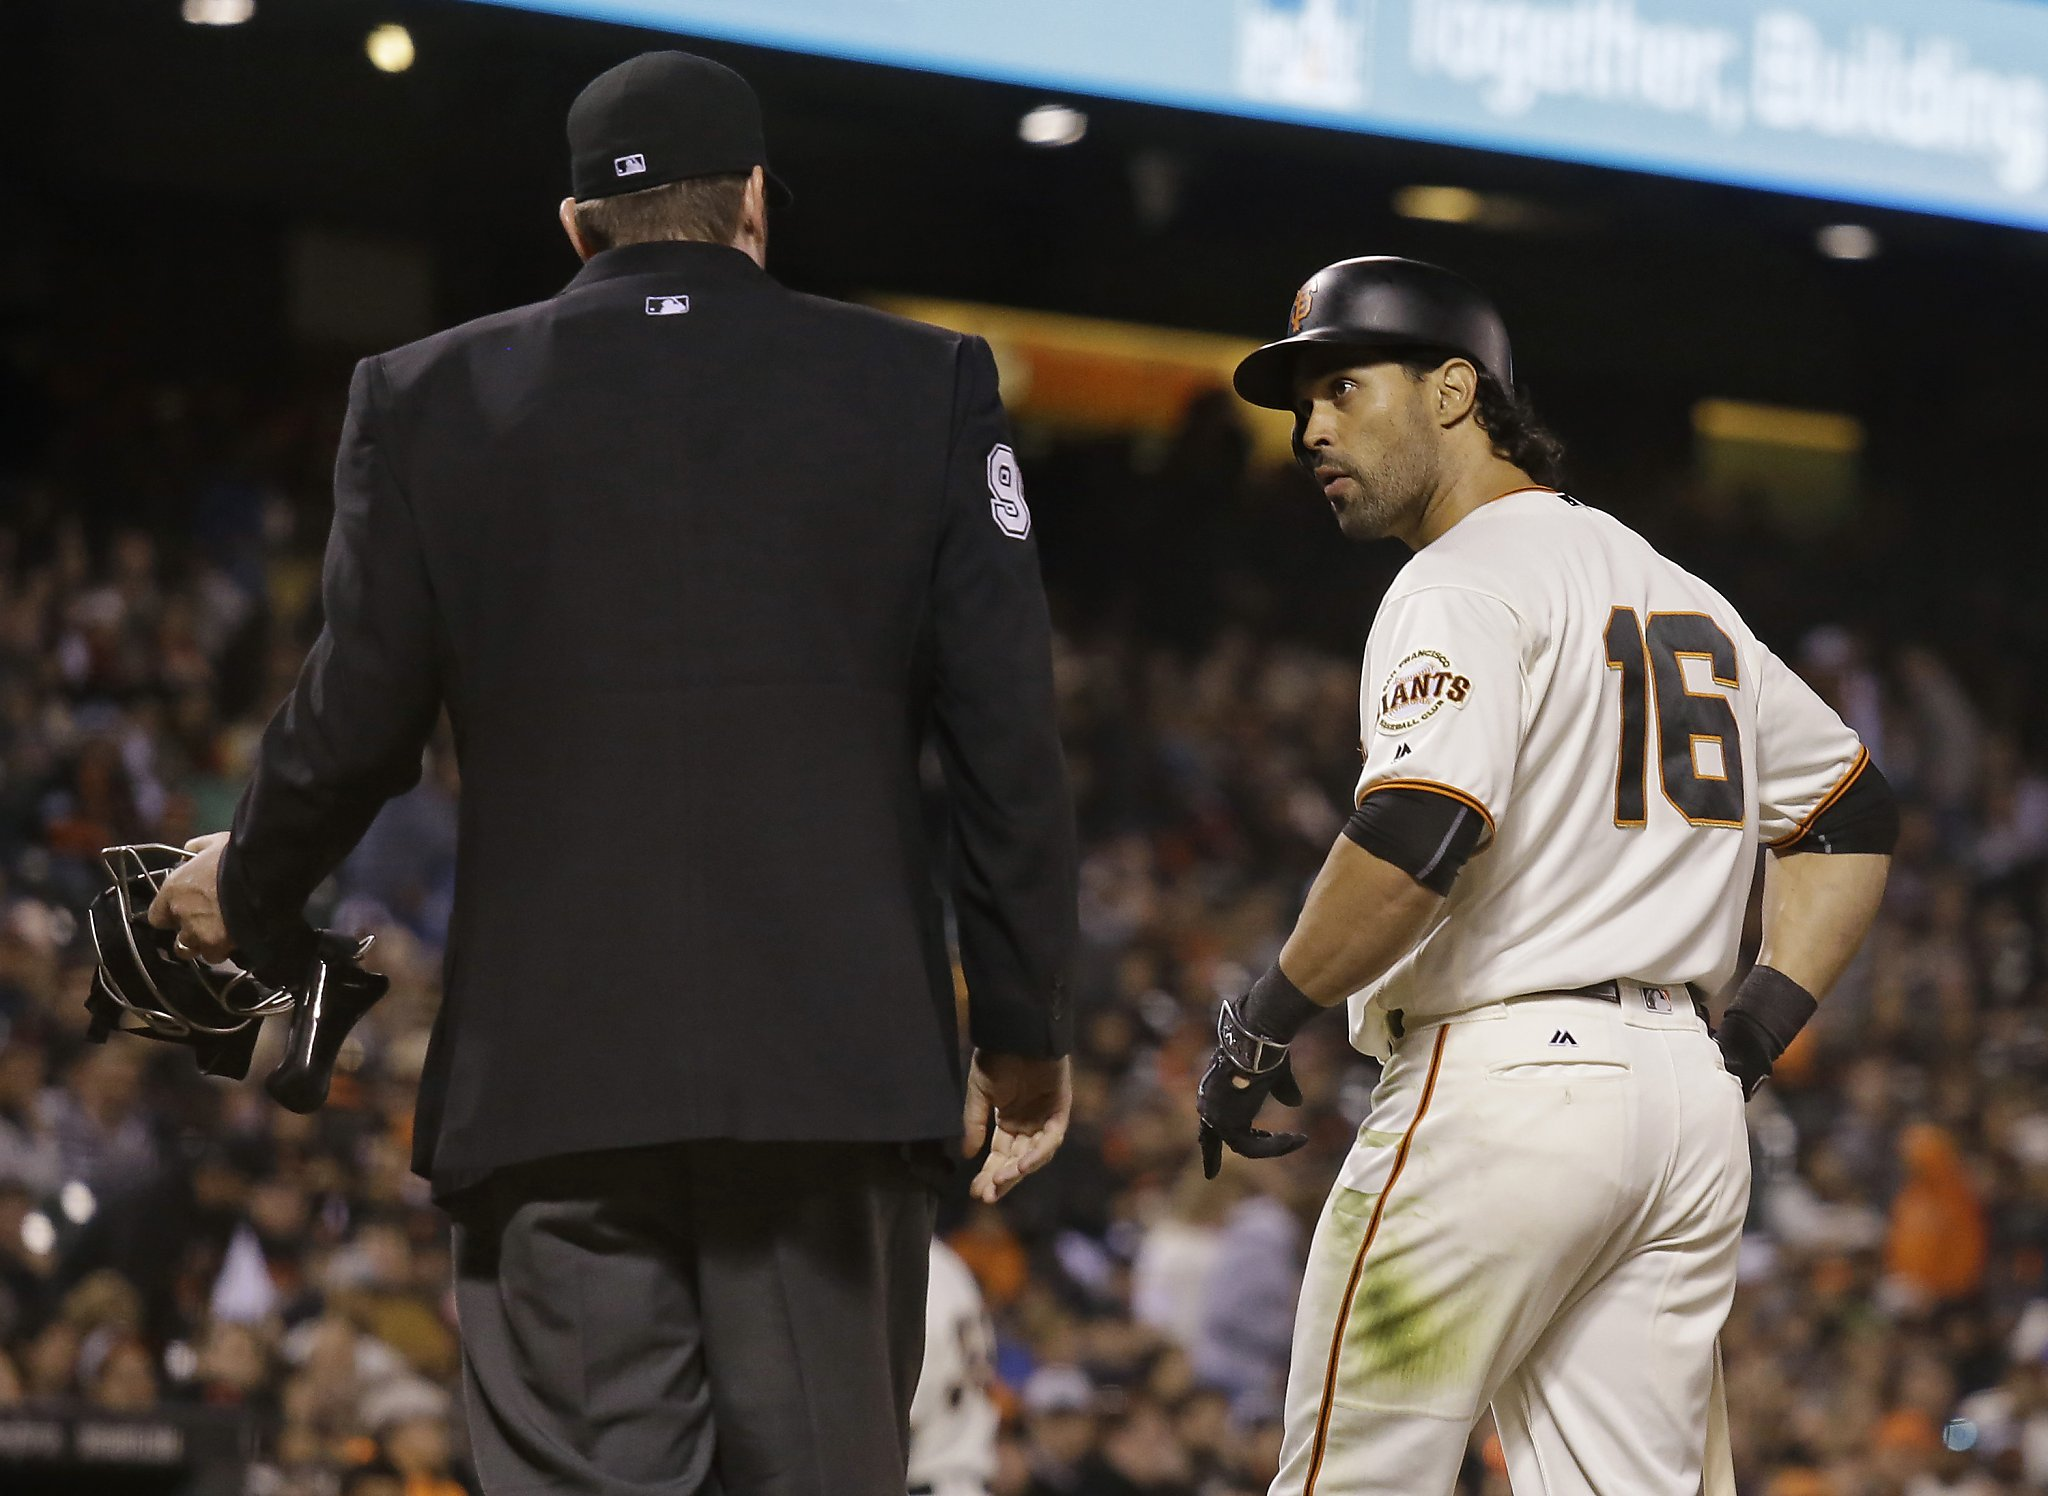 Giants' win streak ends quietly against Padres - SFGate